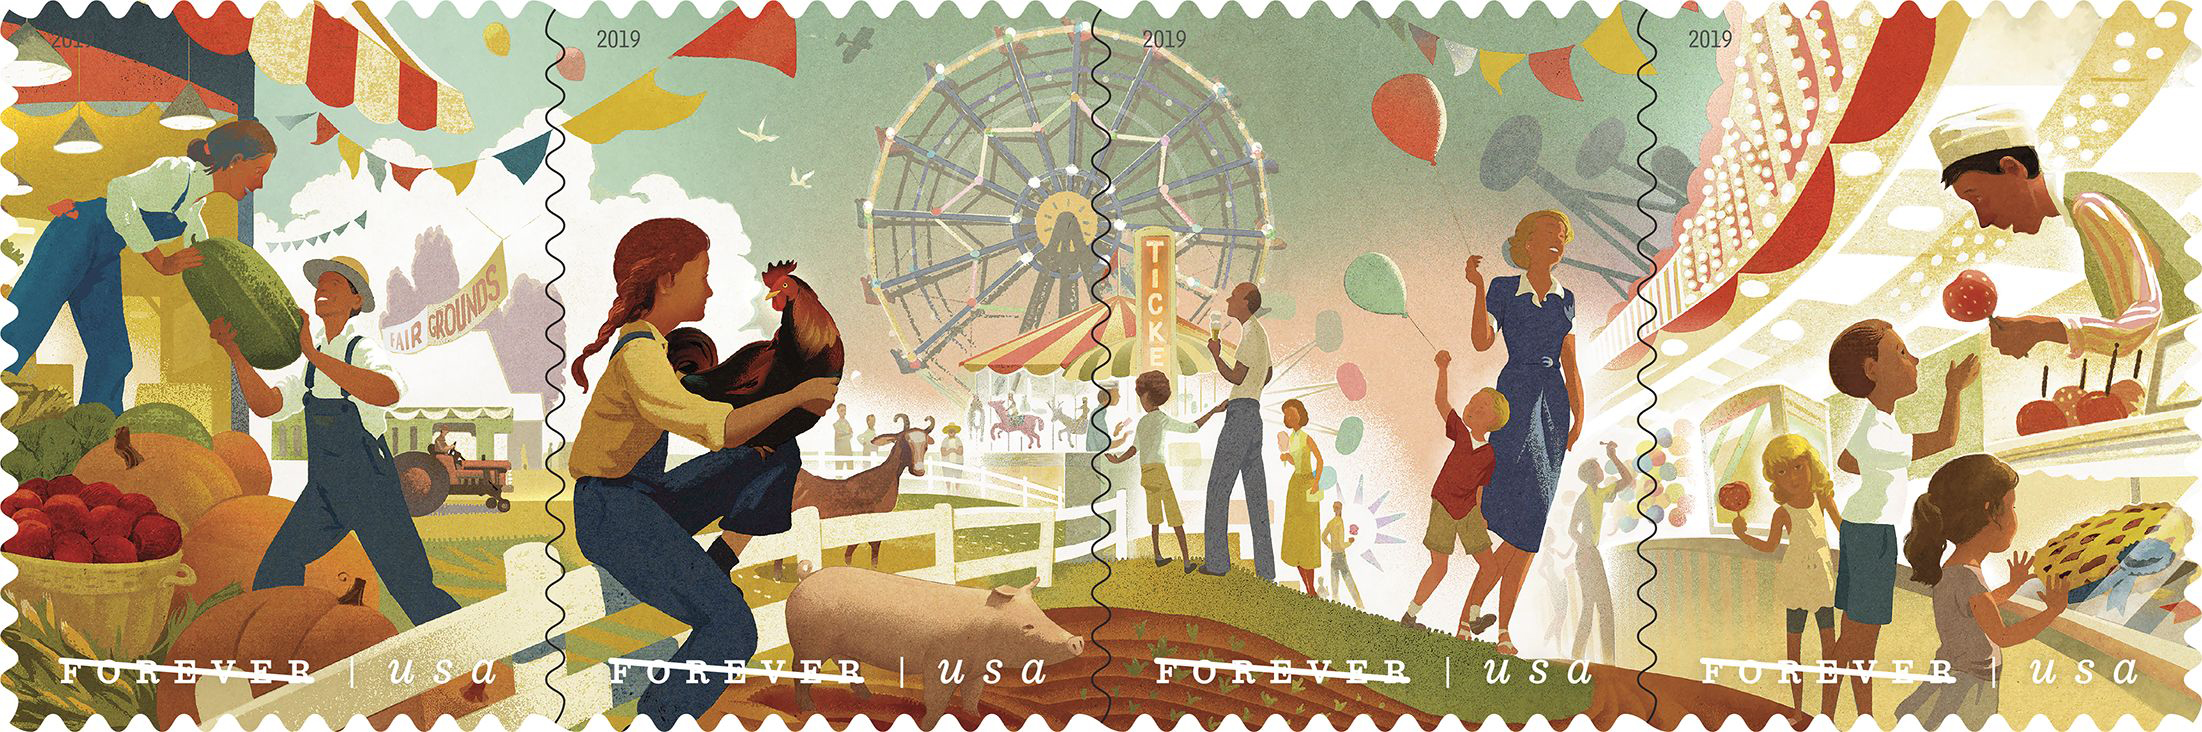 112018_blog-state-and-county-fairs-USPS19STA004A